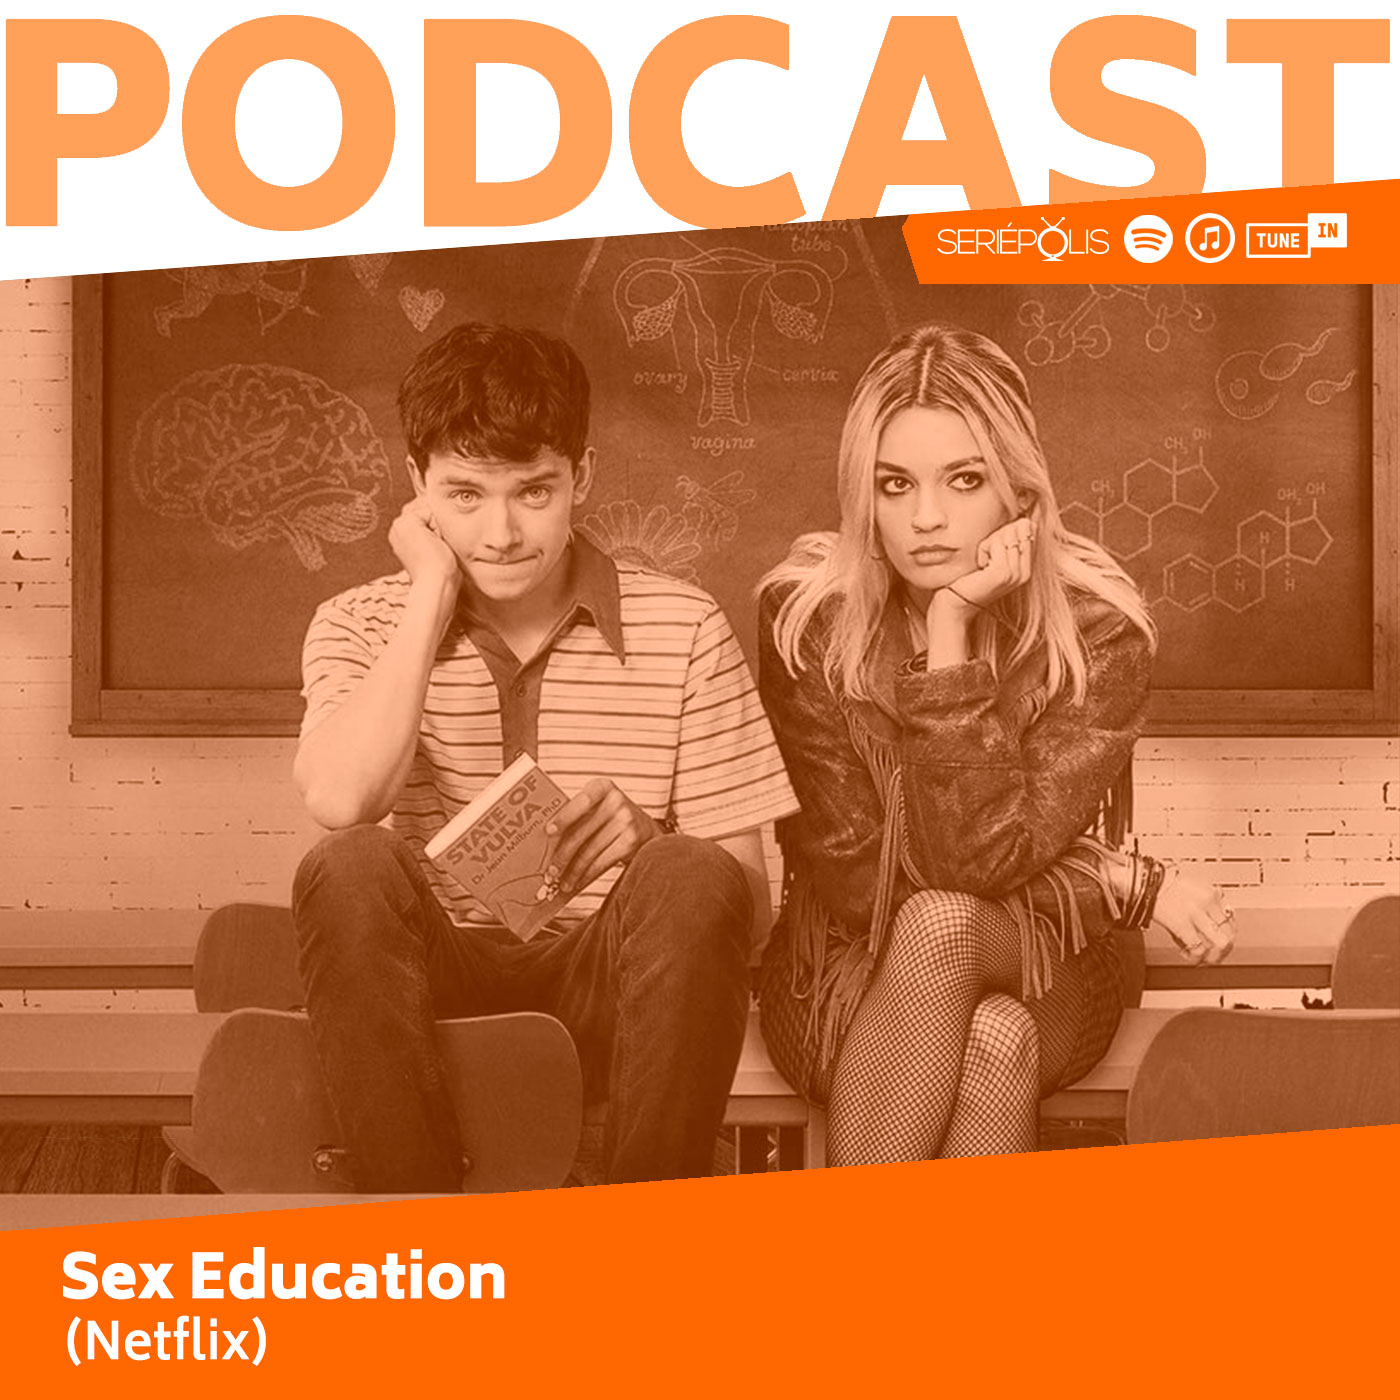 VHS - Sex Education (Netflix)